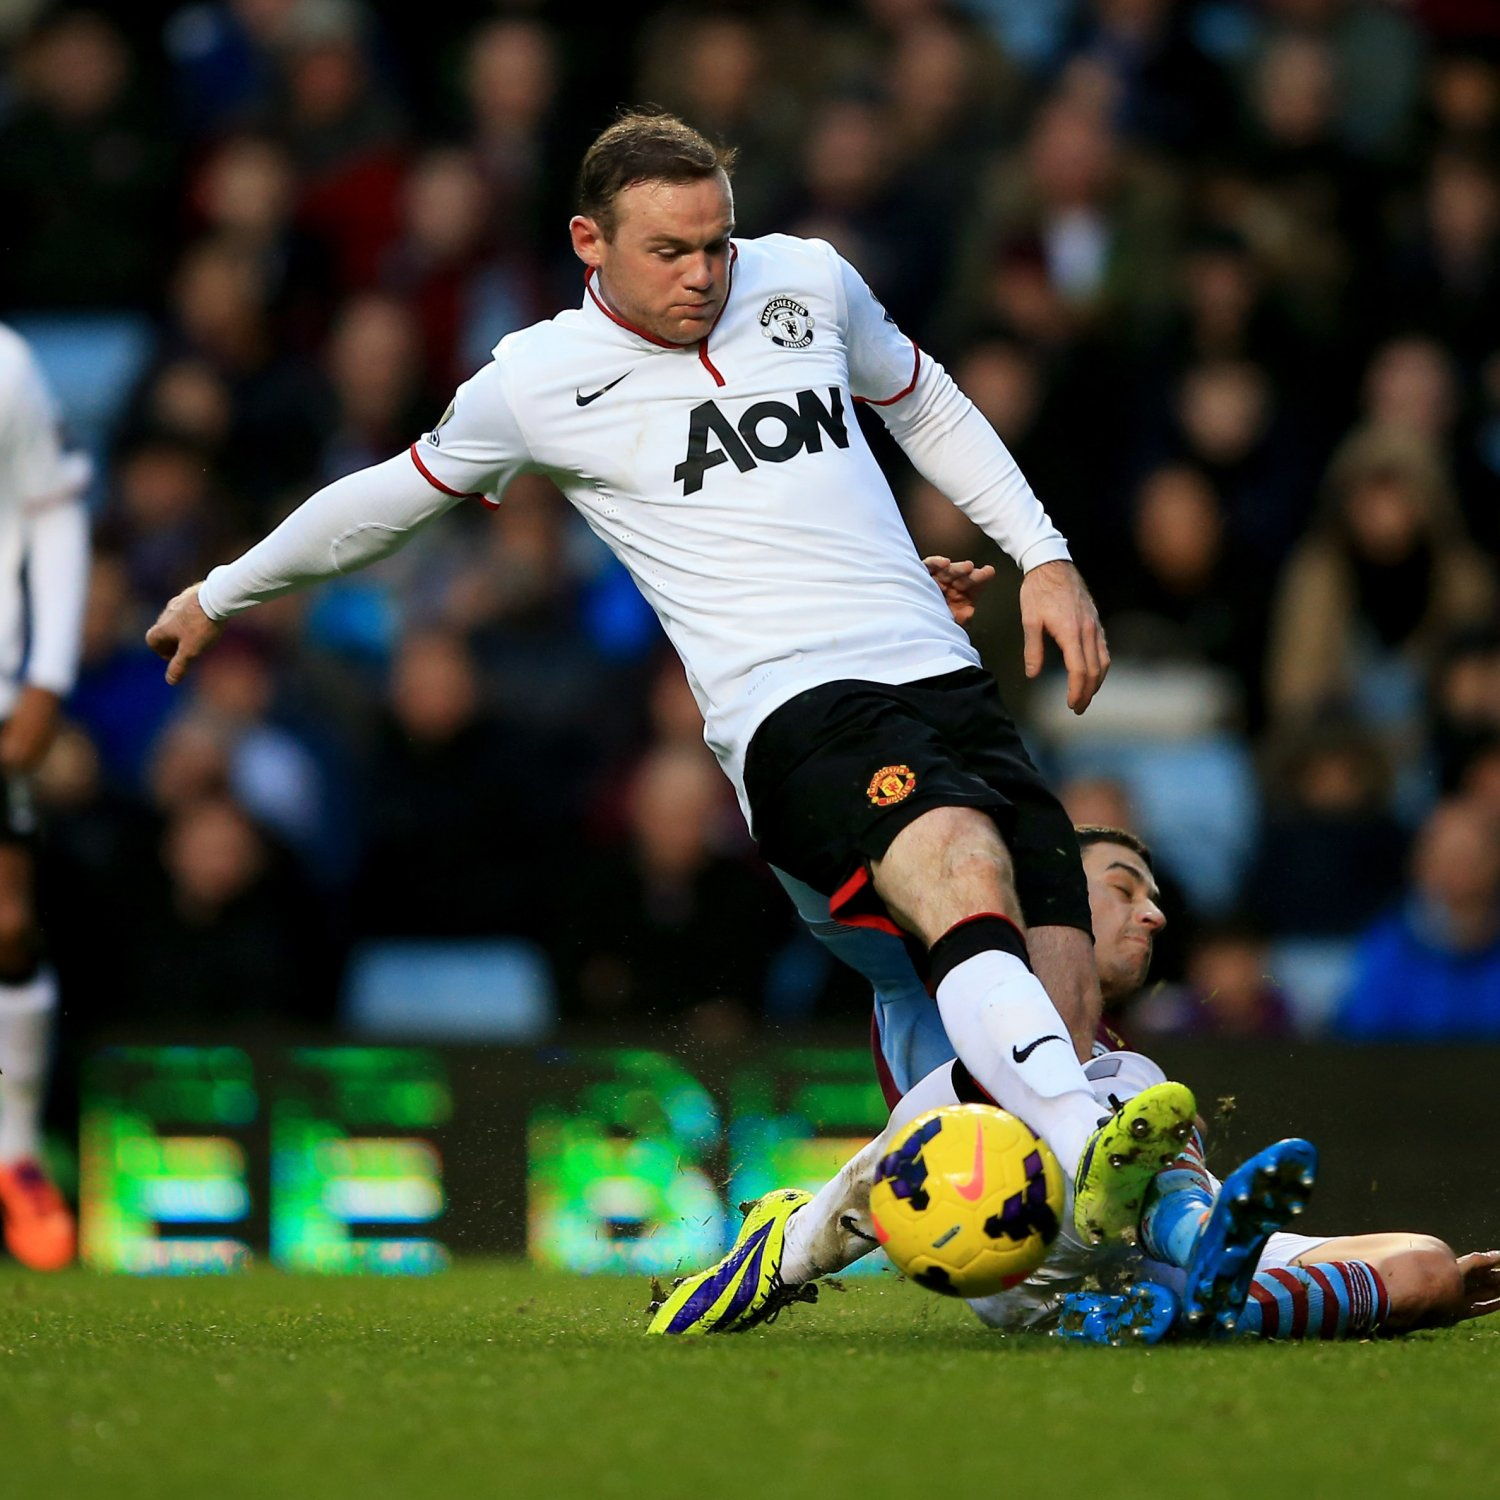 Wayne Rooney Goal Vs Aston Villa Analysing Wayne Rooney s Performance vs Aston Villa Bleacher Report